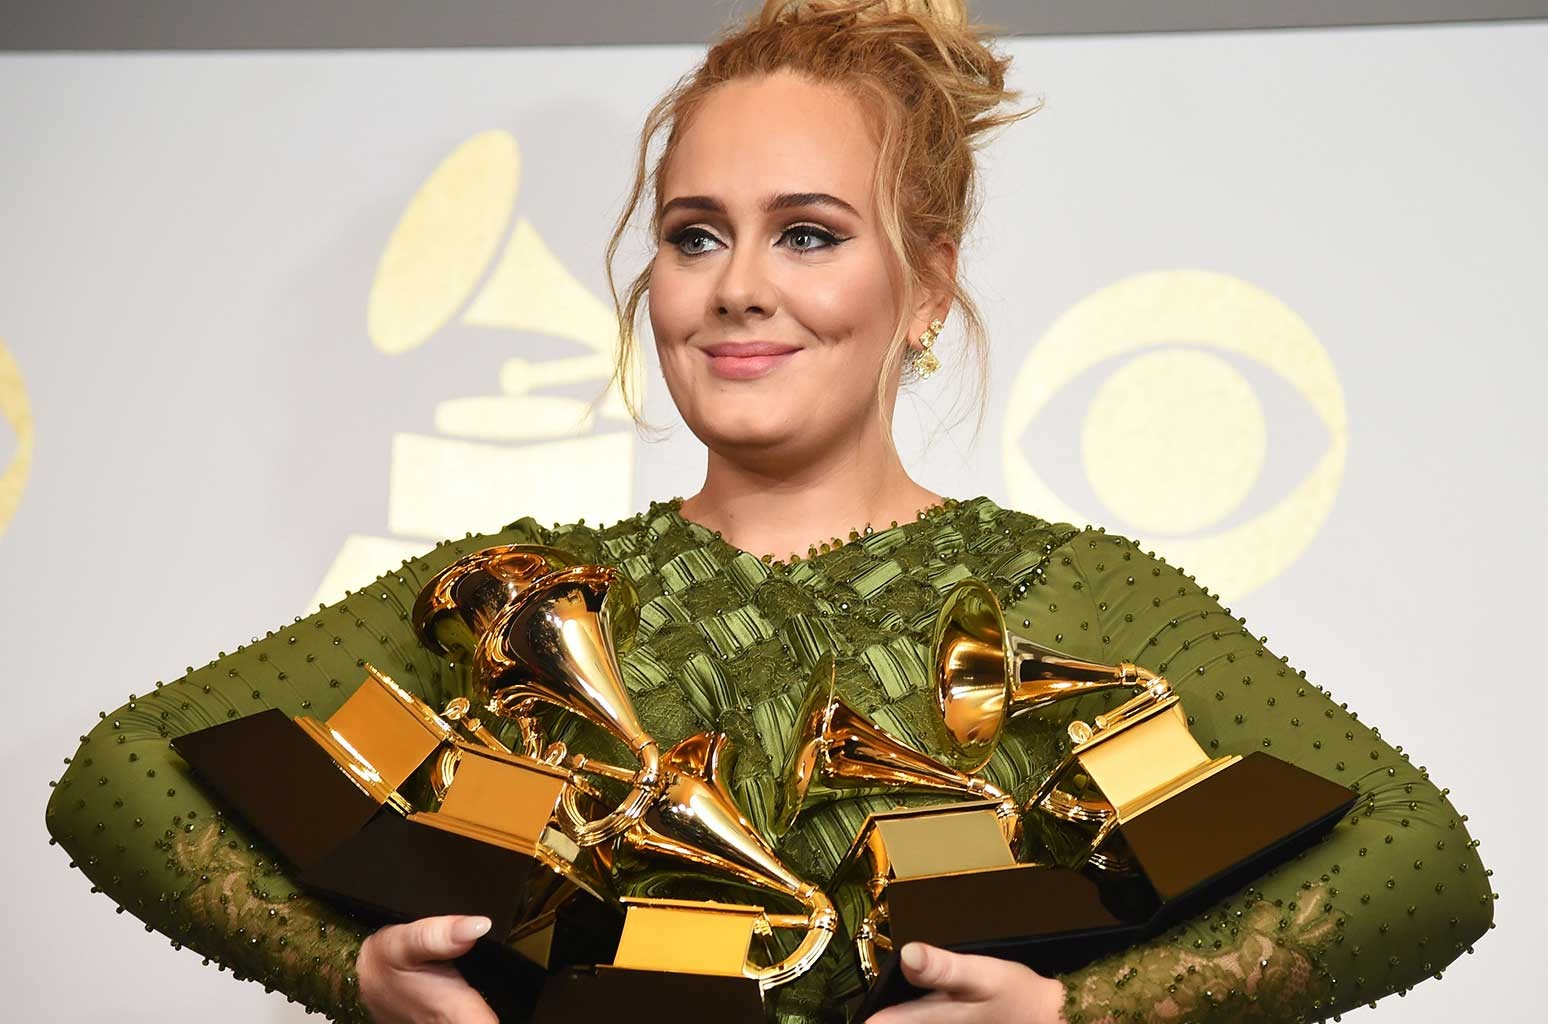 """Adele poses in the press room with her trophies, including the top two Grammys of Album and Record of the Year for her blockbuster hit """"Hello"""" and the album """"25"""", during the 59th Annual Grammy music Awards on Feb. 12, 2017 in Los Angeles."""